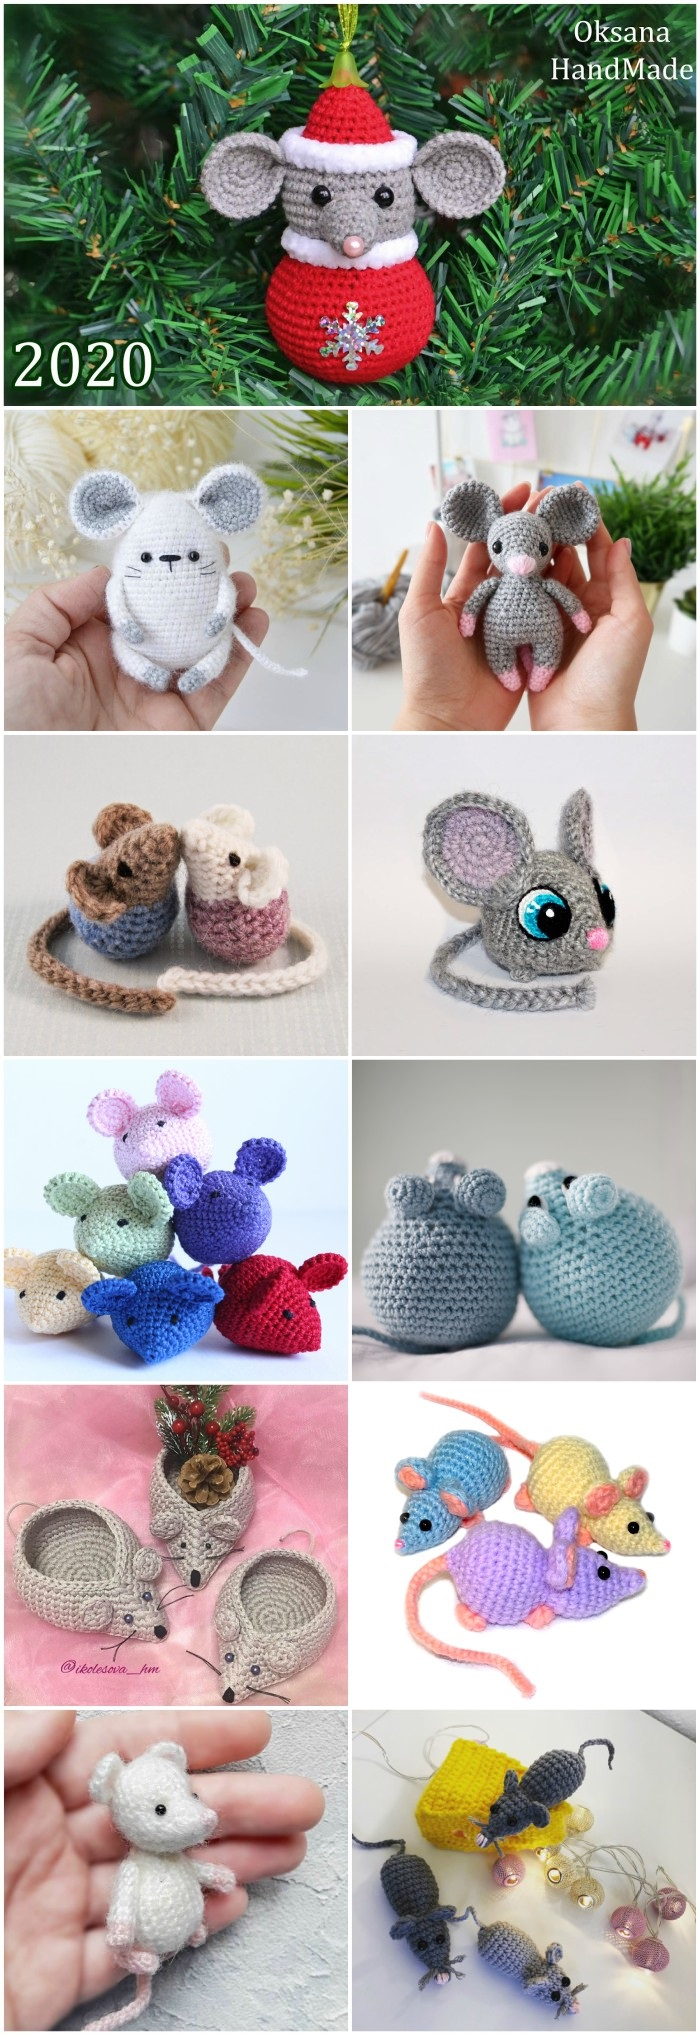 Crochet mouse tutorial and free pattern – The Green Dragonfly | 2035x700